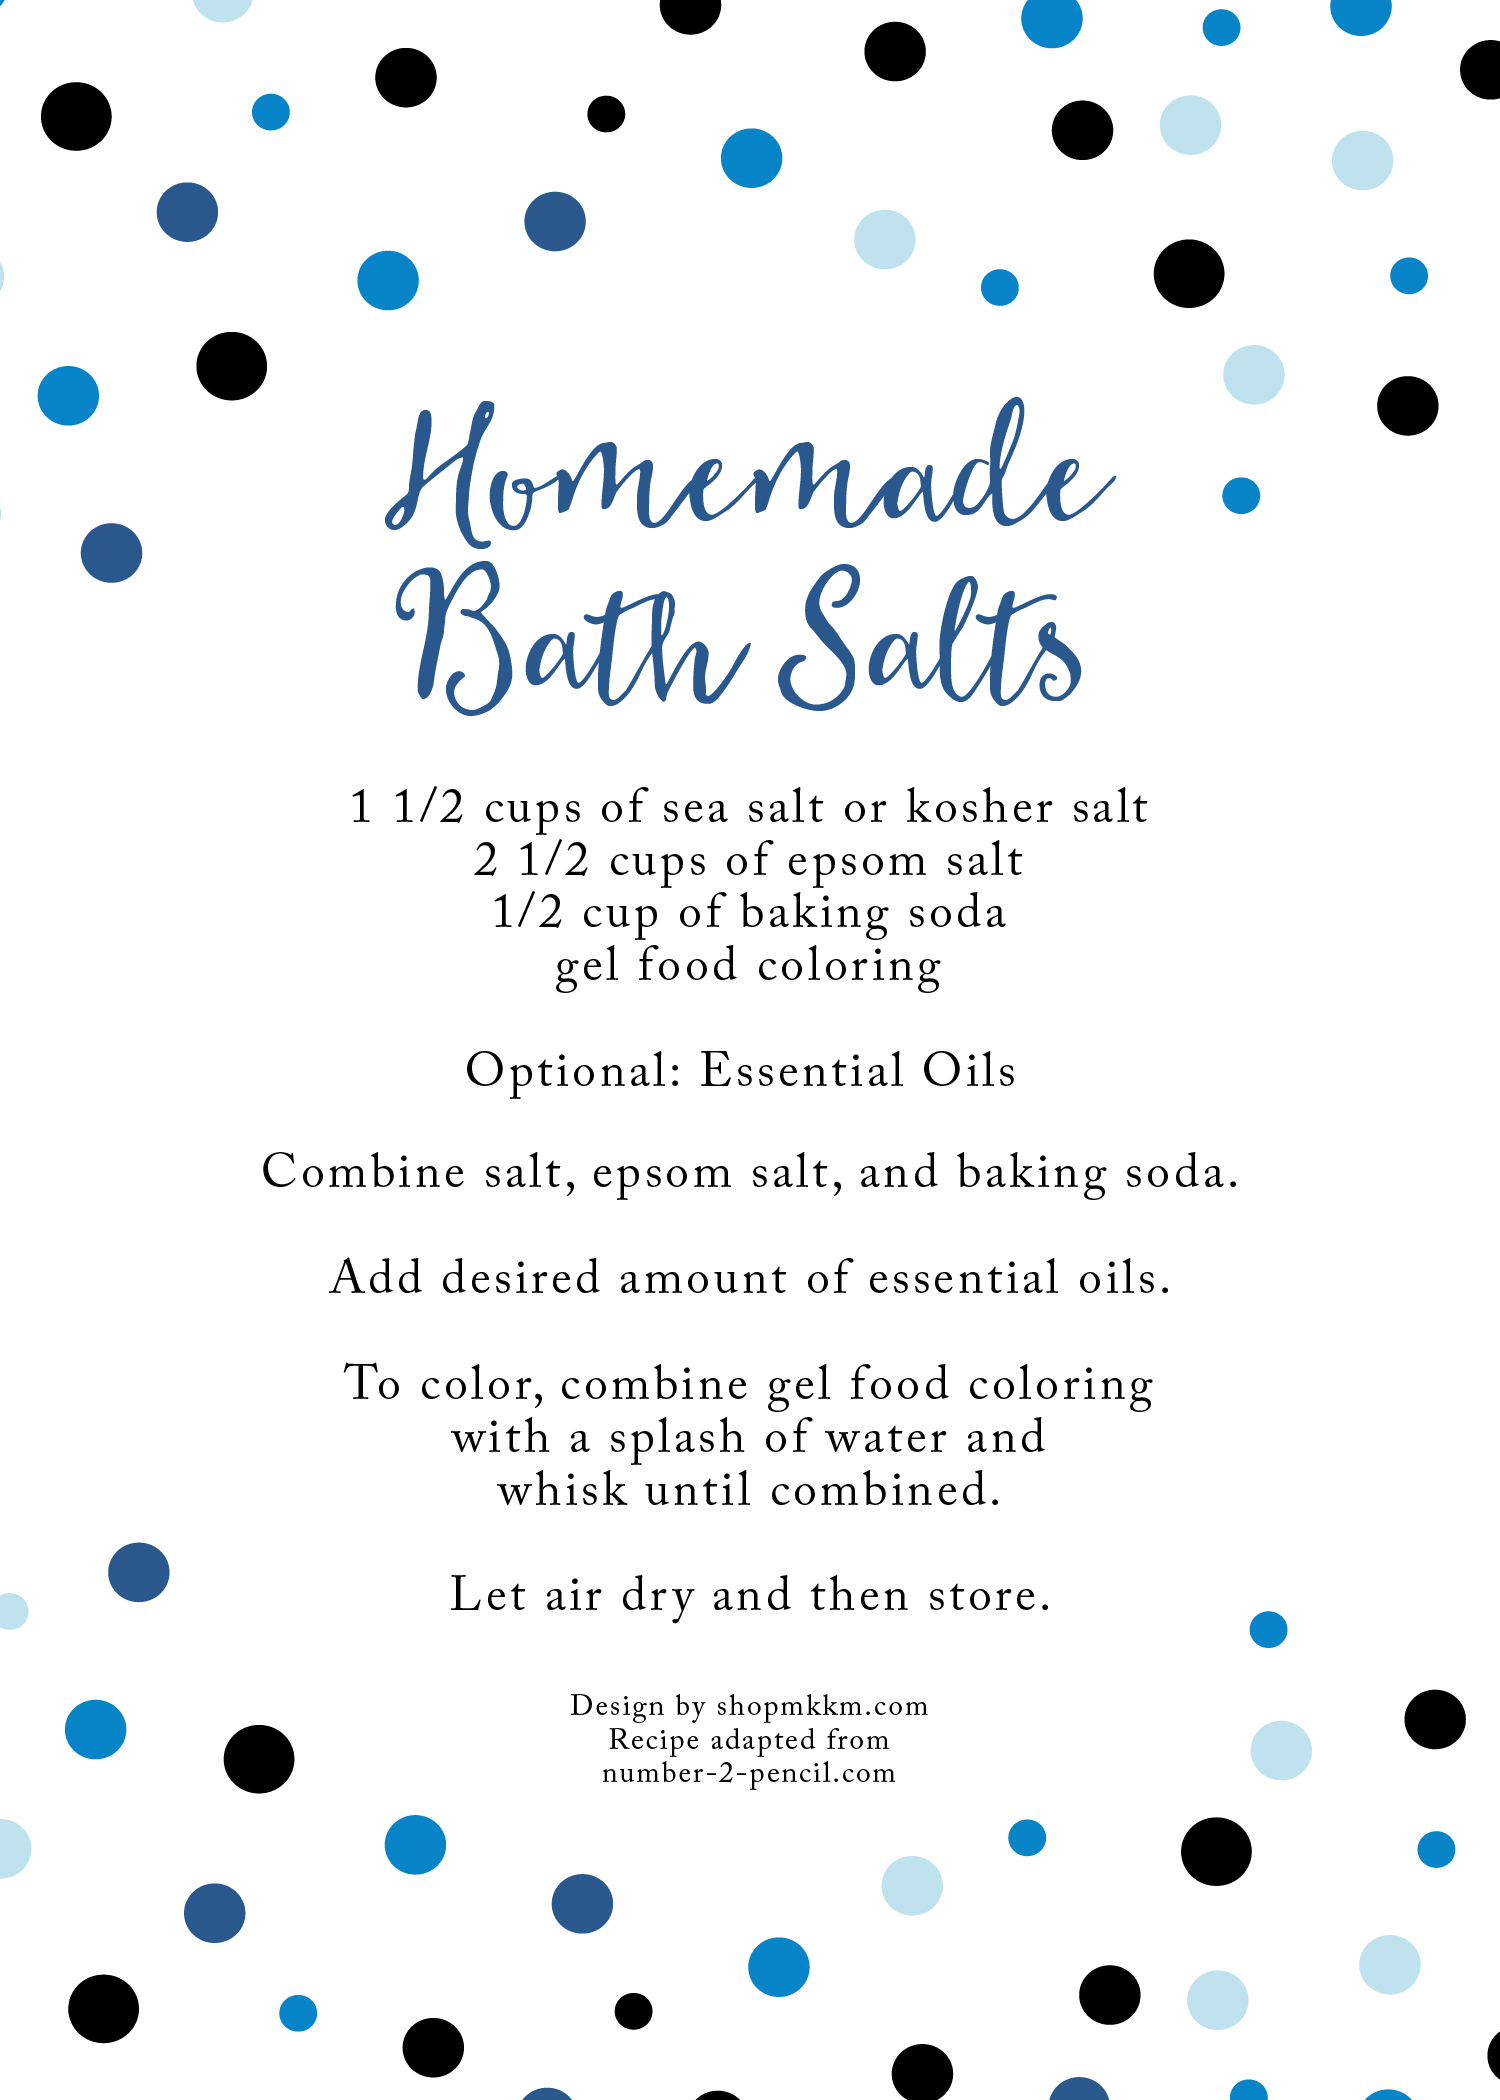 Homemade Bath Salts Recipe for baby shower favors. - Design by shopmkkm.com Recipe adapted from number-2-pencil.com